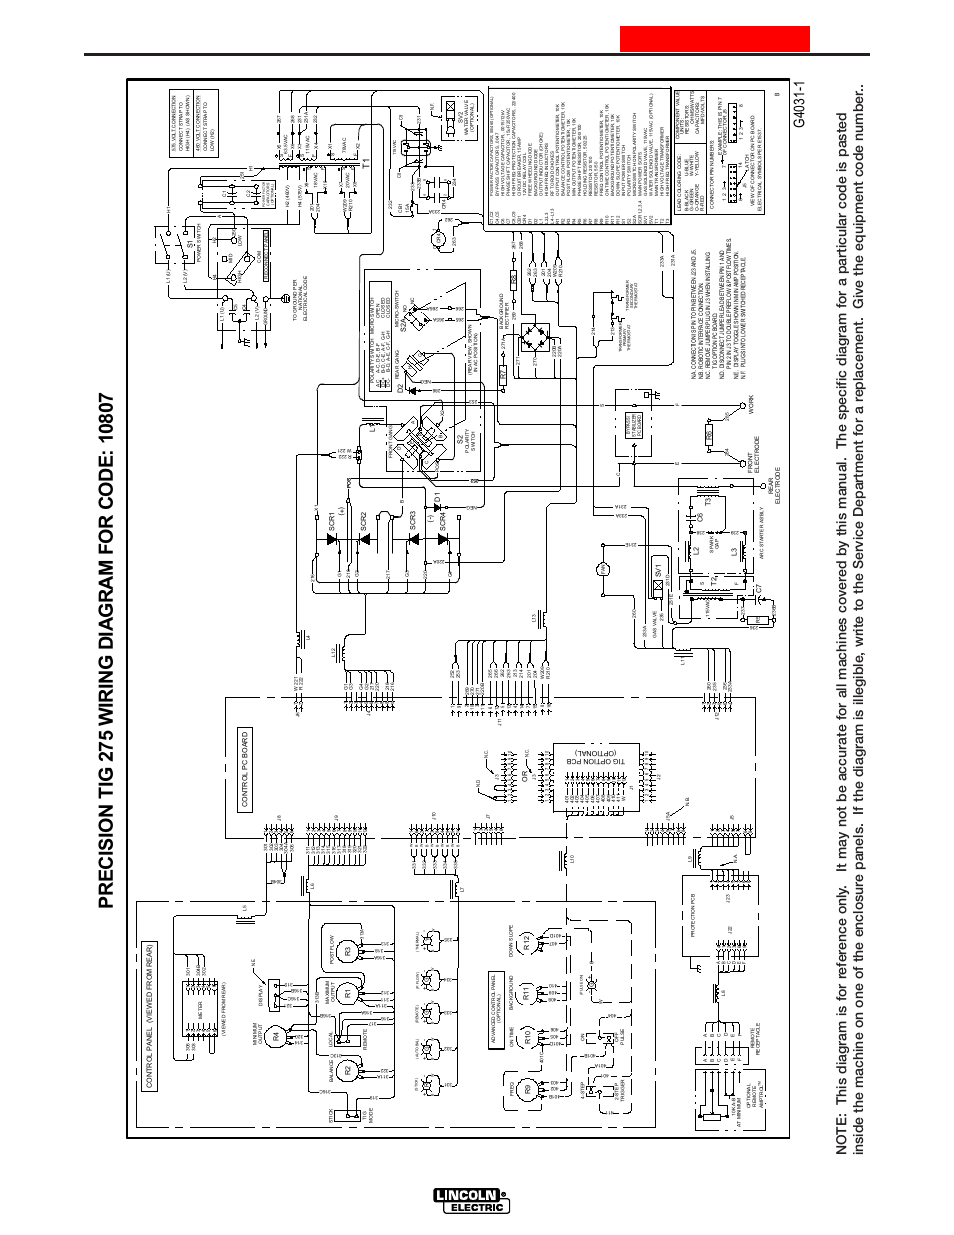 Lincoln Welder 275 S Wiring Diagram. Miller 30a Spool Gun